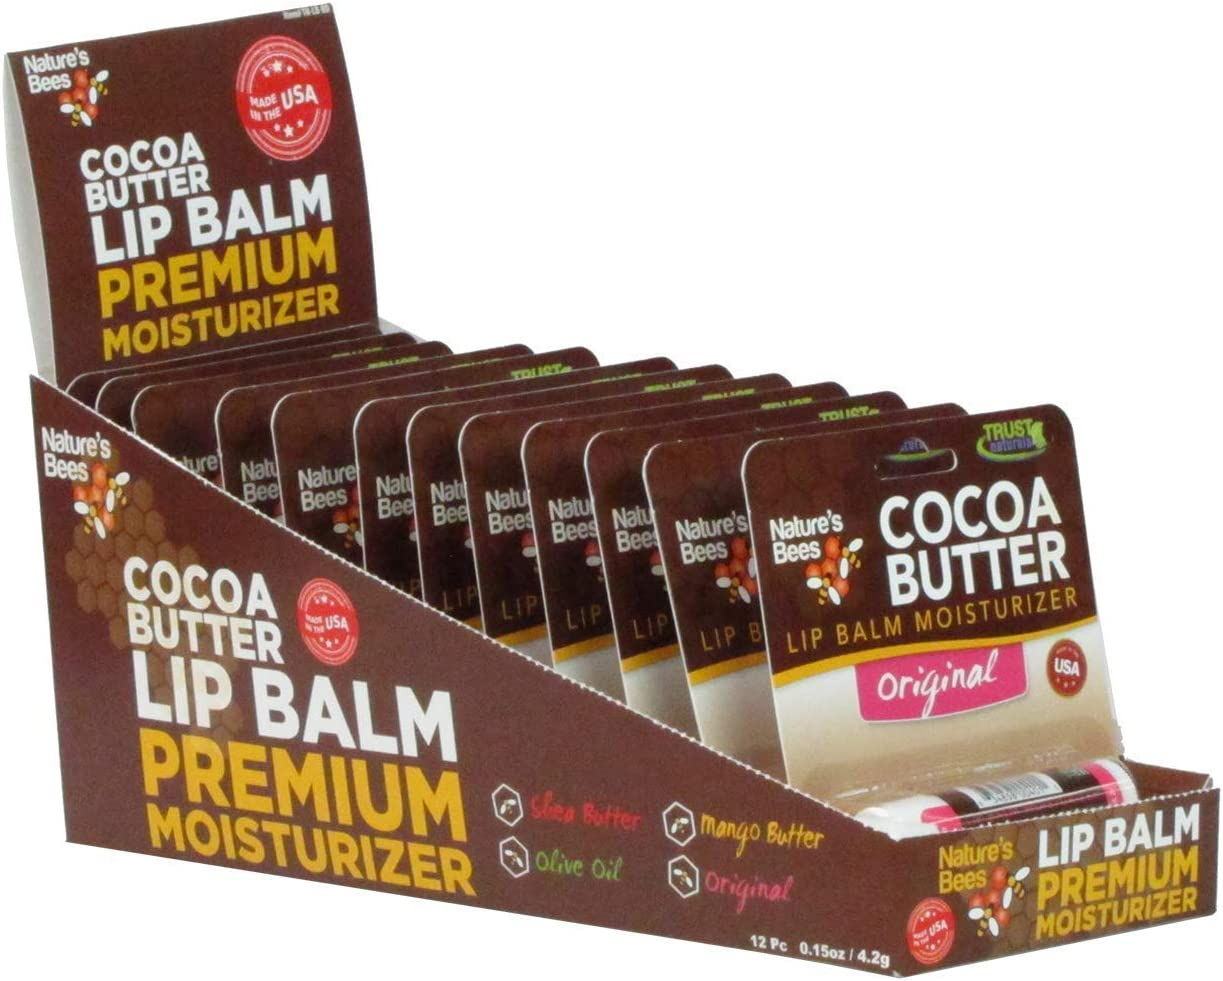 Nature's Bees, Cocoa Butter Lip Balms, Lip Moisturizer Treatment - Pack of 12, Original